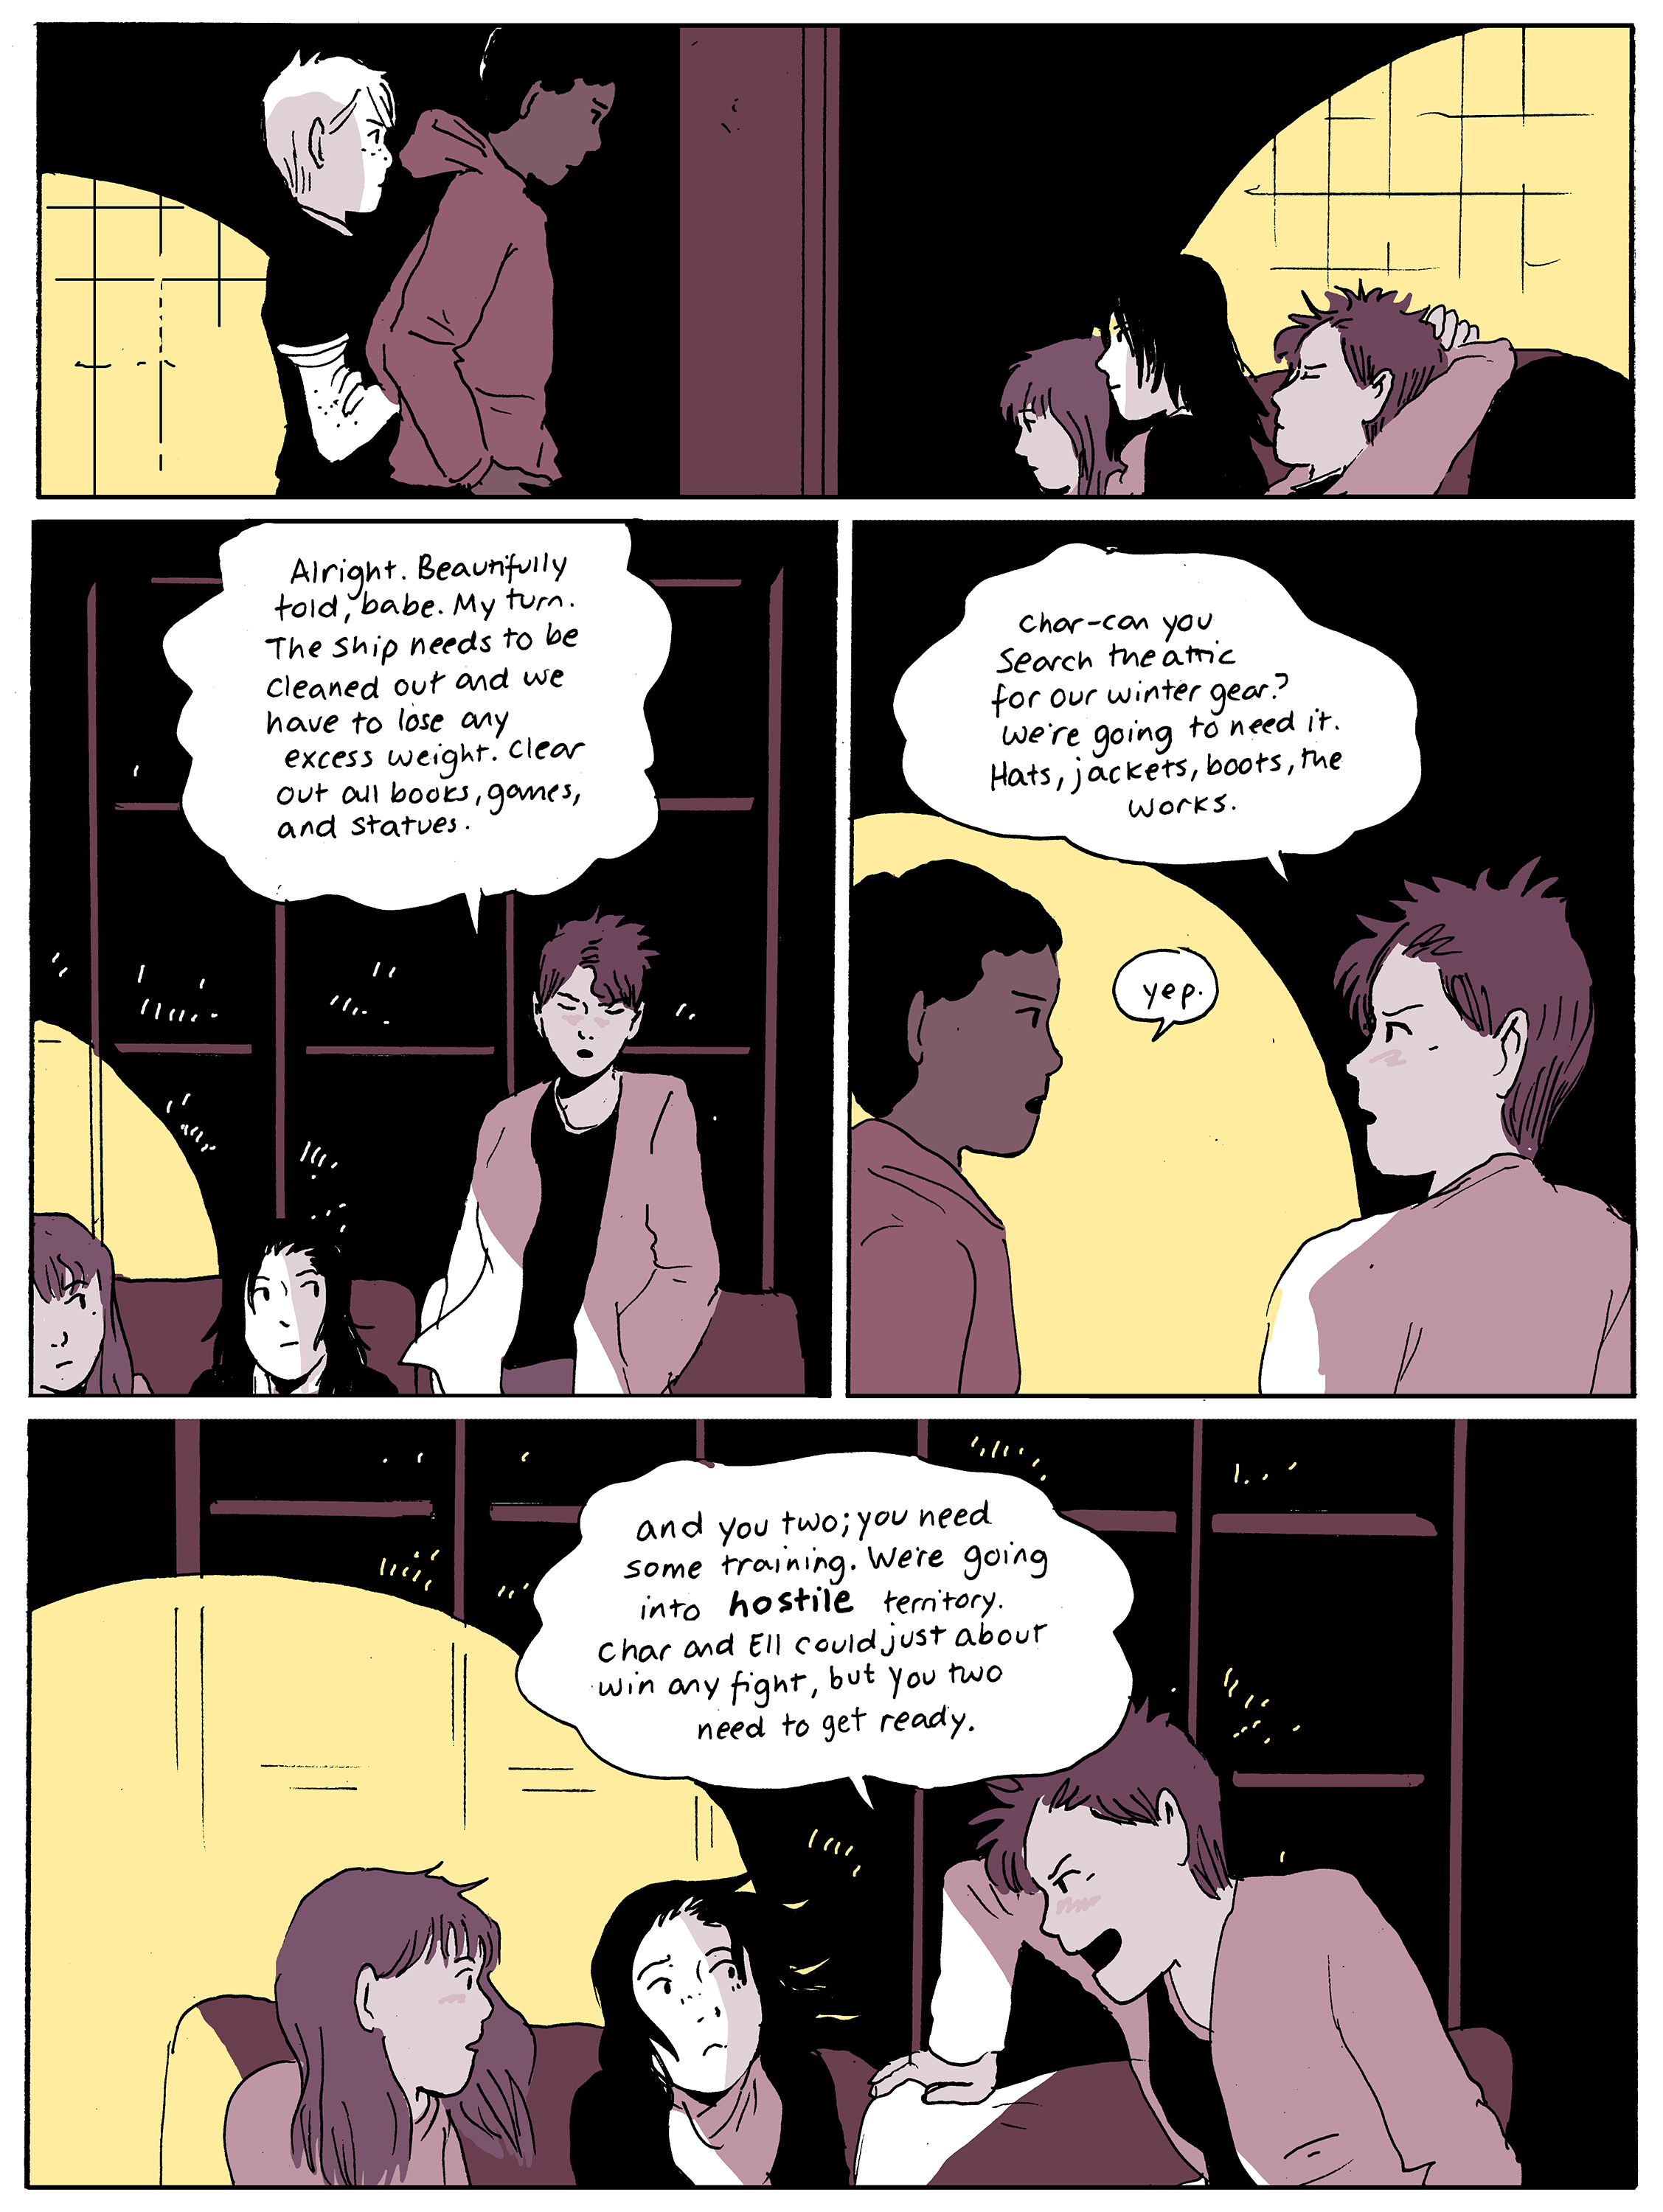 chapter14_page13.jpg